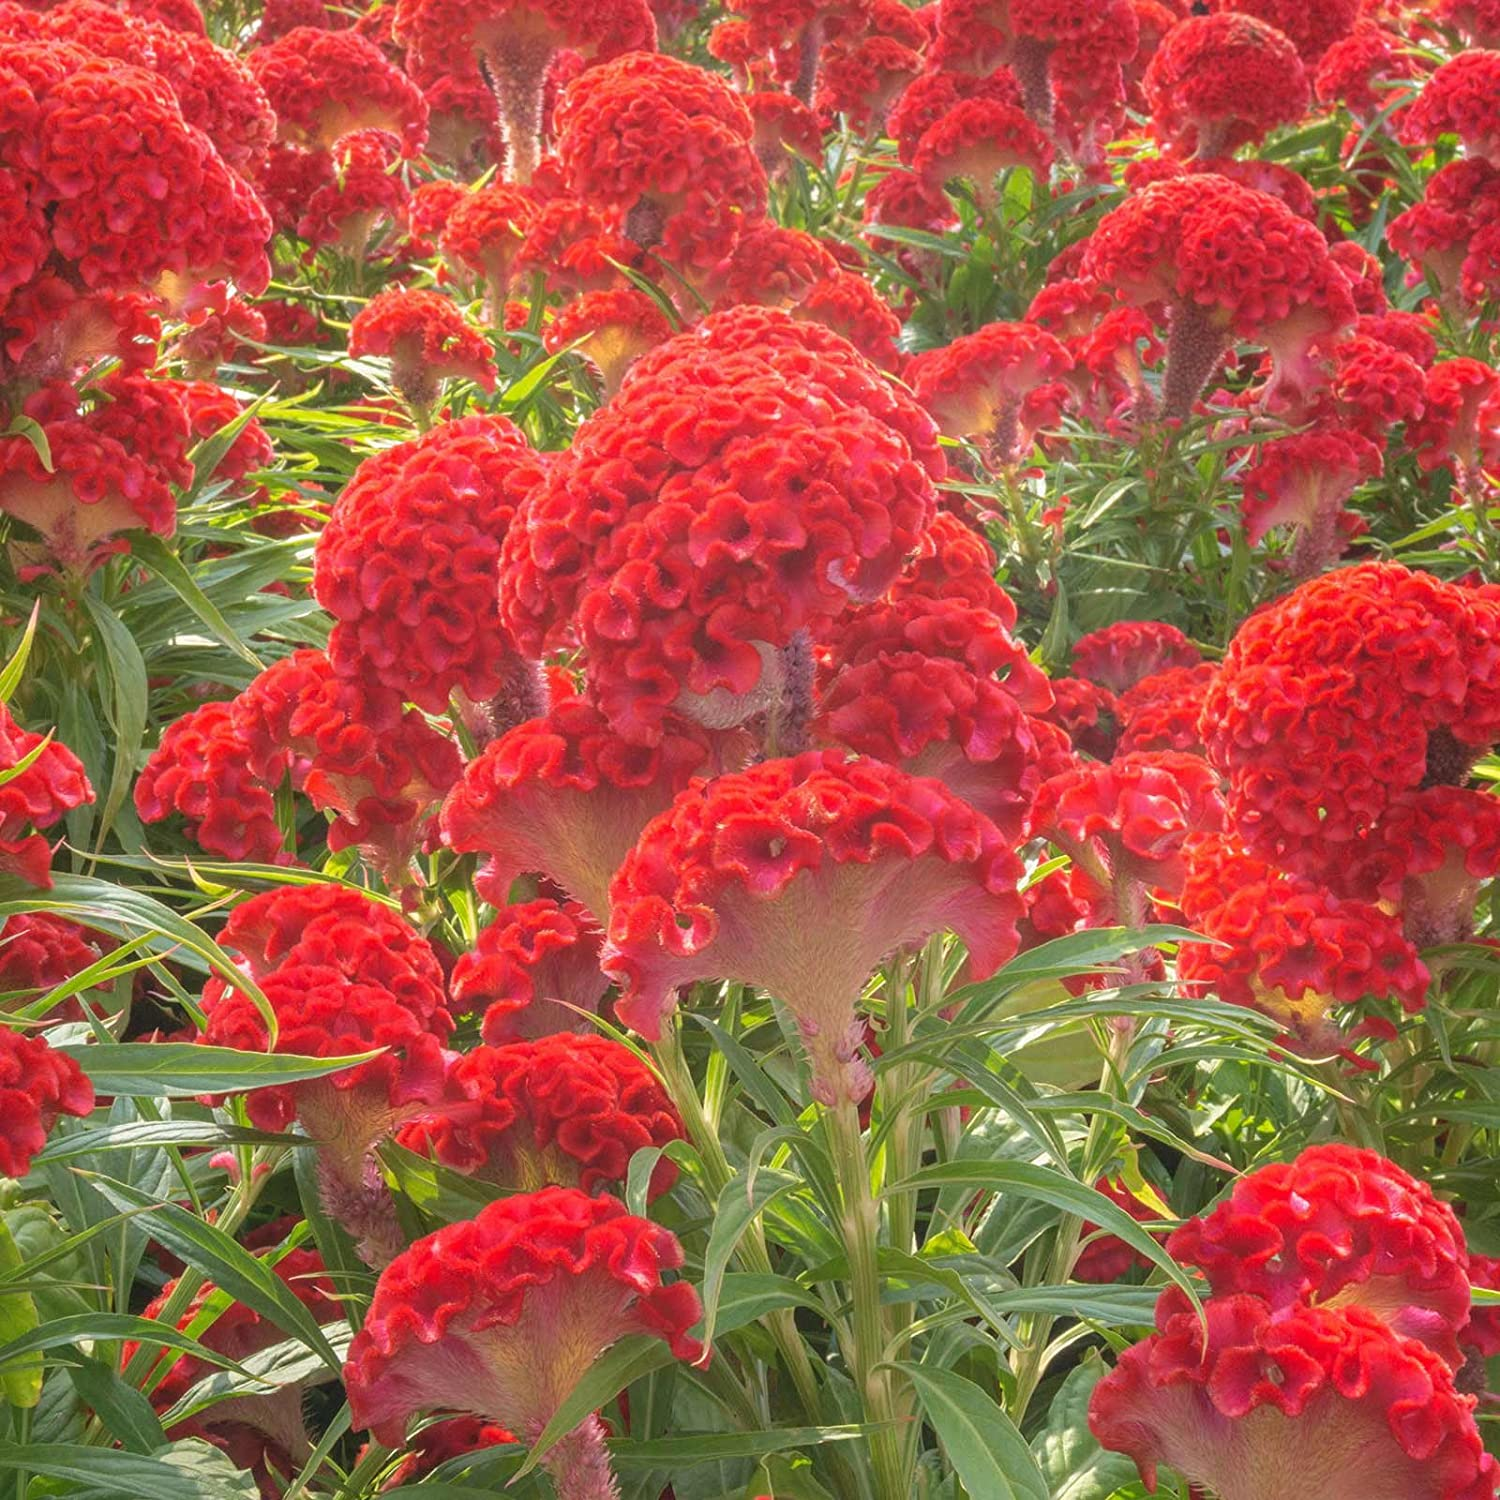 Amazon Crested Prestige Scarlet Celosia Seeds 1000 Seeds